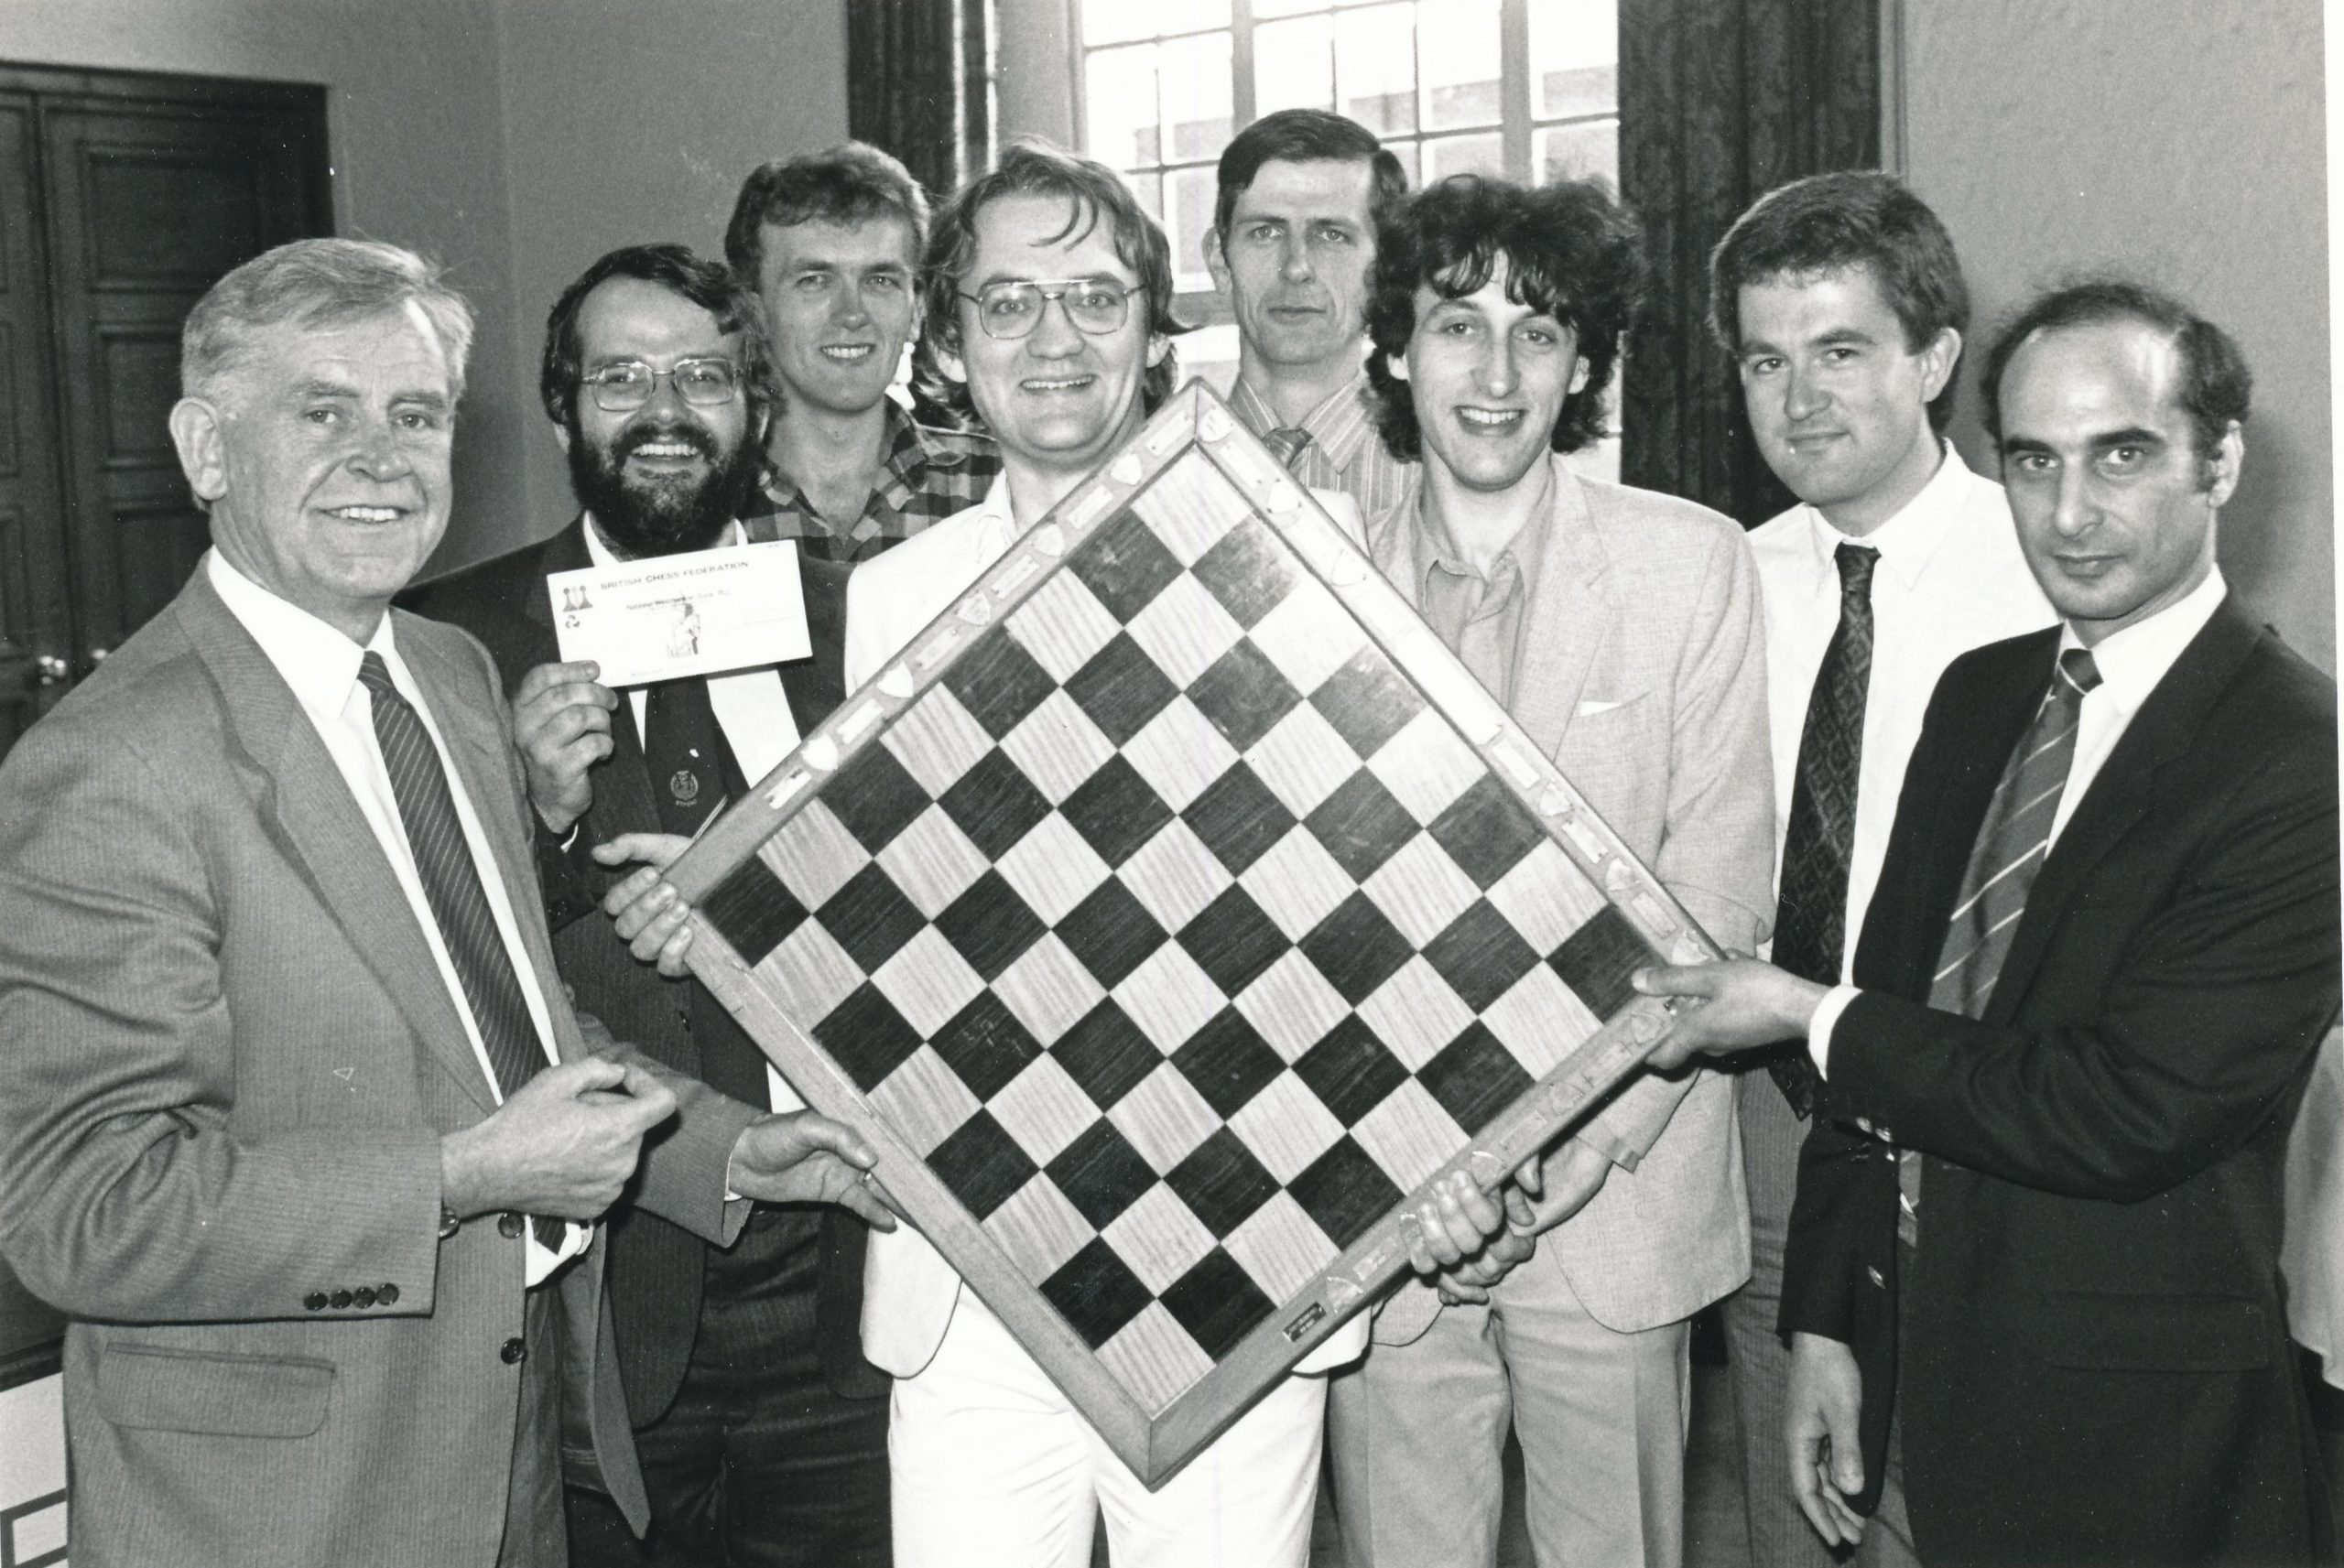 David Friedgood (far right) and a victorious Wood Green team. Trophy presented by Magnus Magnusson